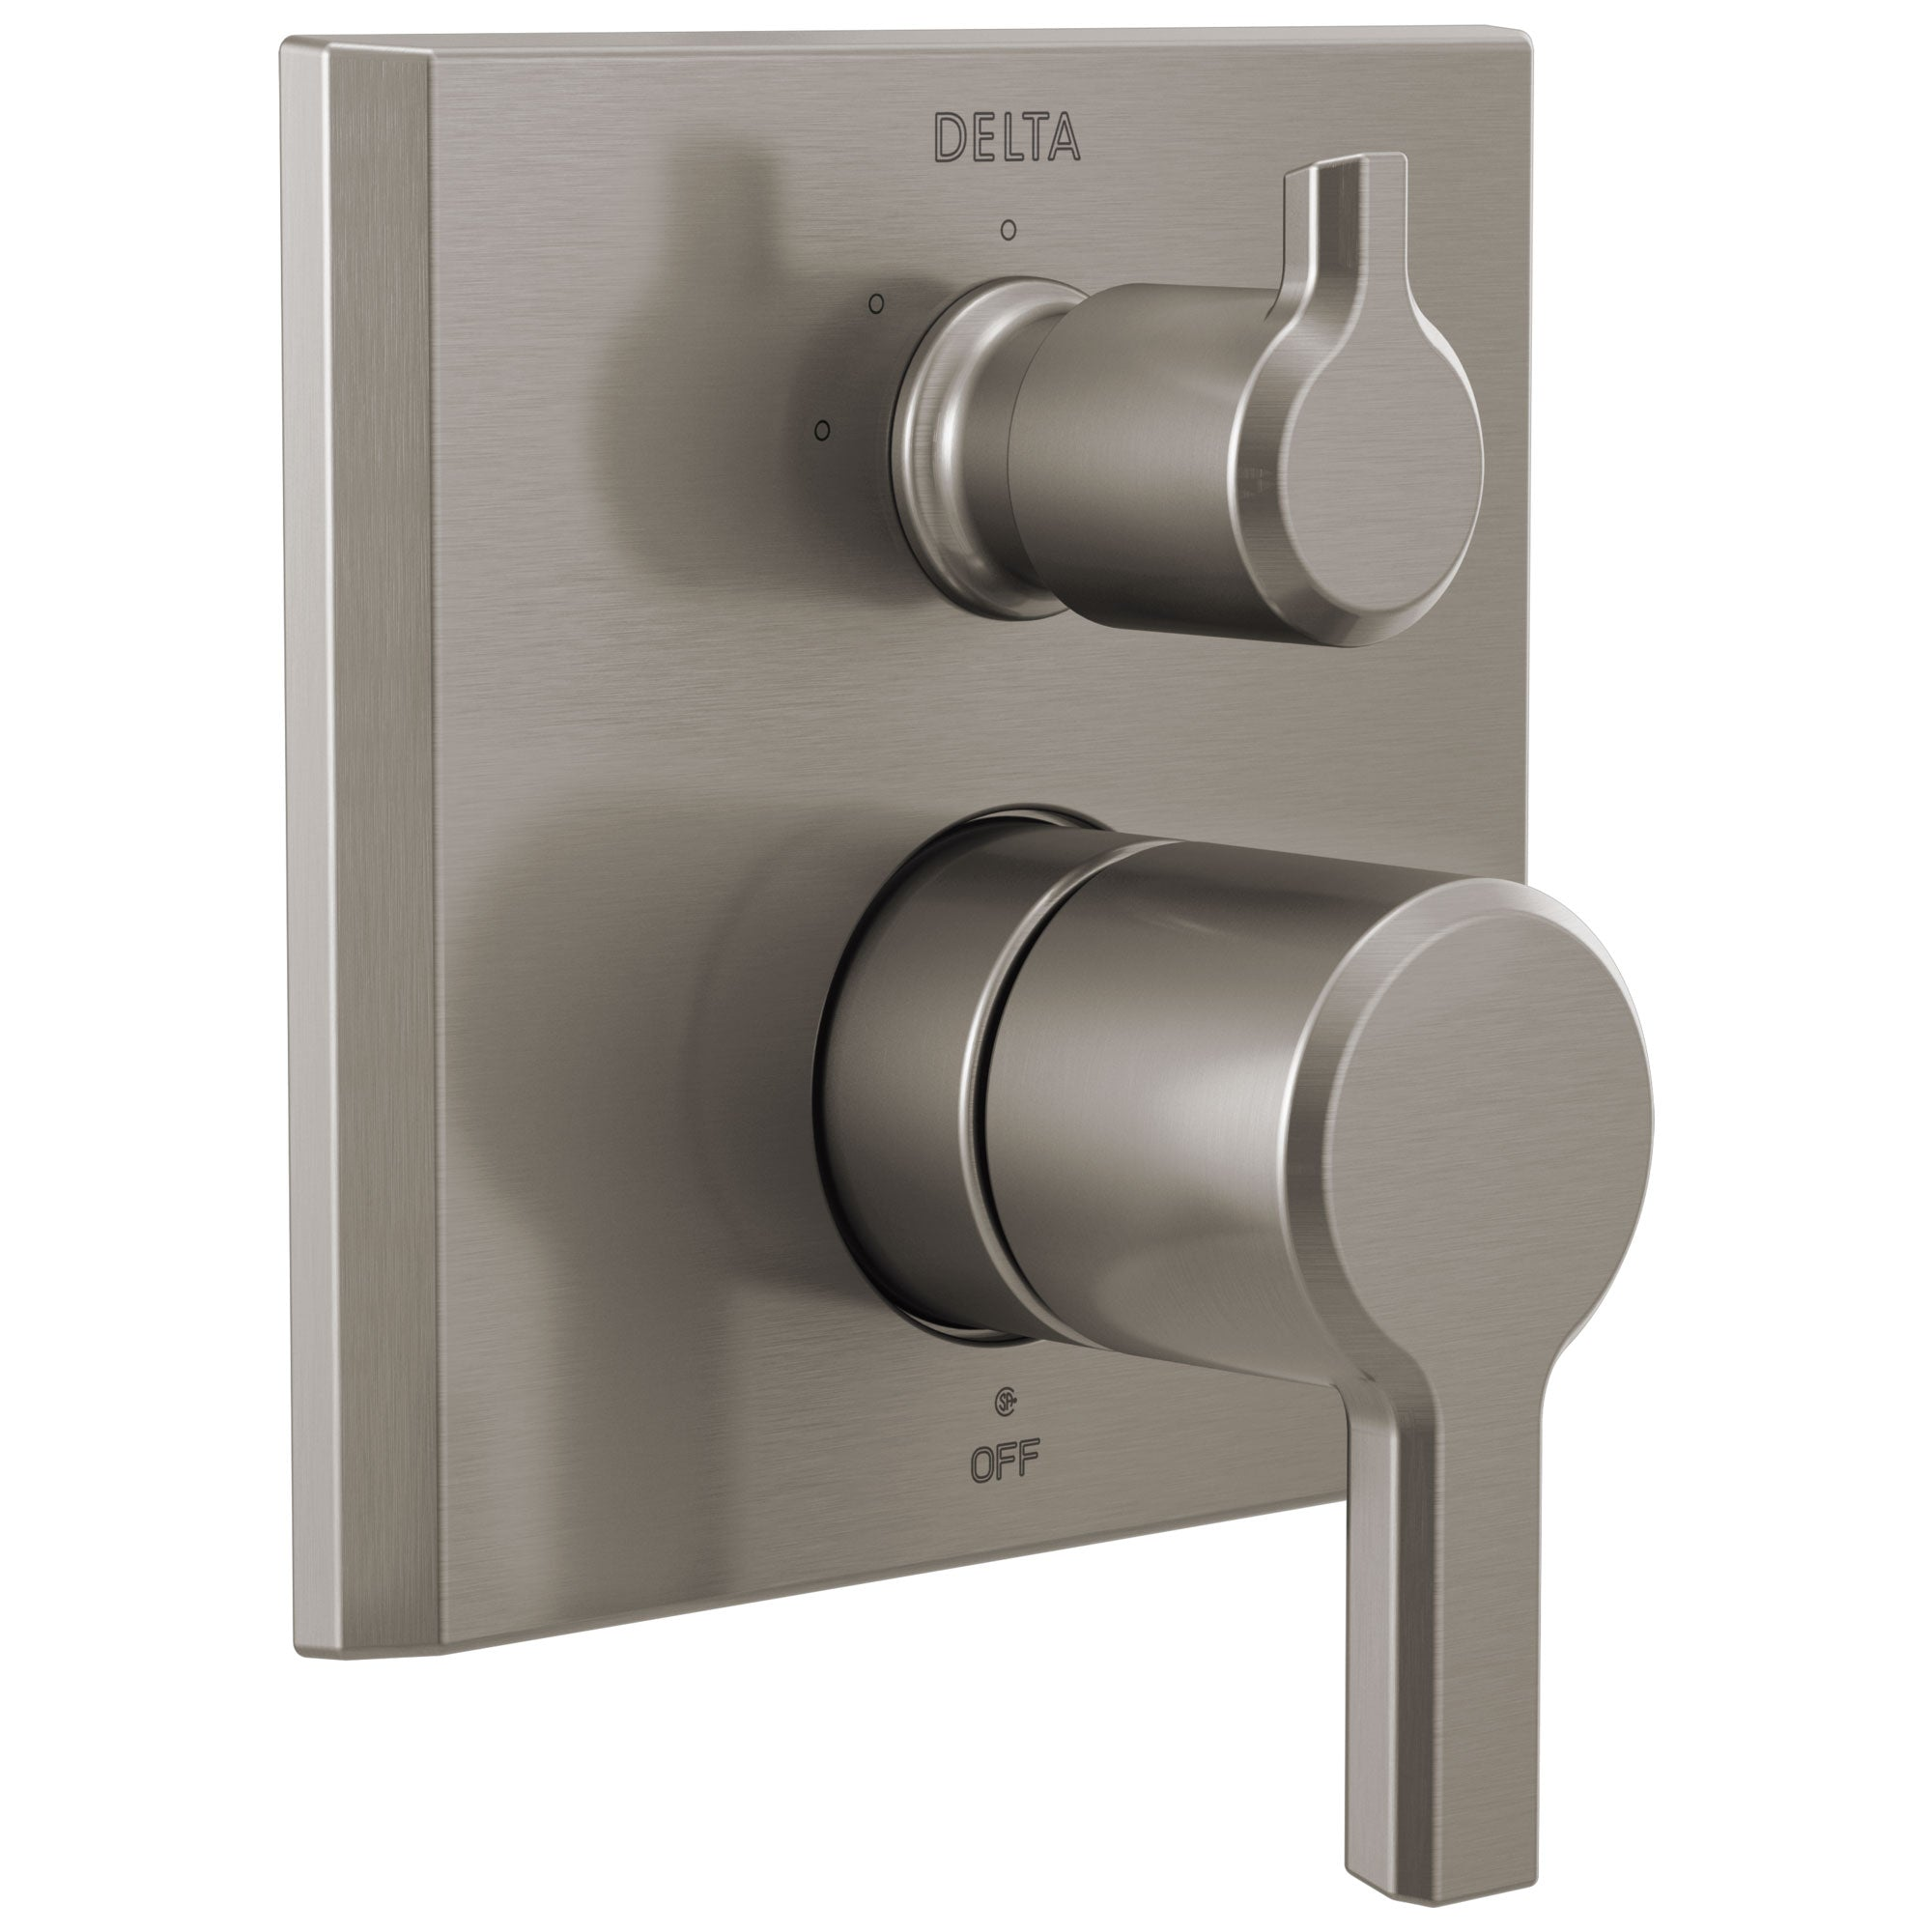 Delta Pivotal Stainless Steel Finish 14 Series Shower Faucet System Control with 3-Setting Integrated Diverter Includes Valve and Handles D3188V